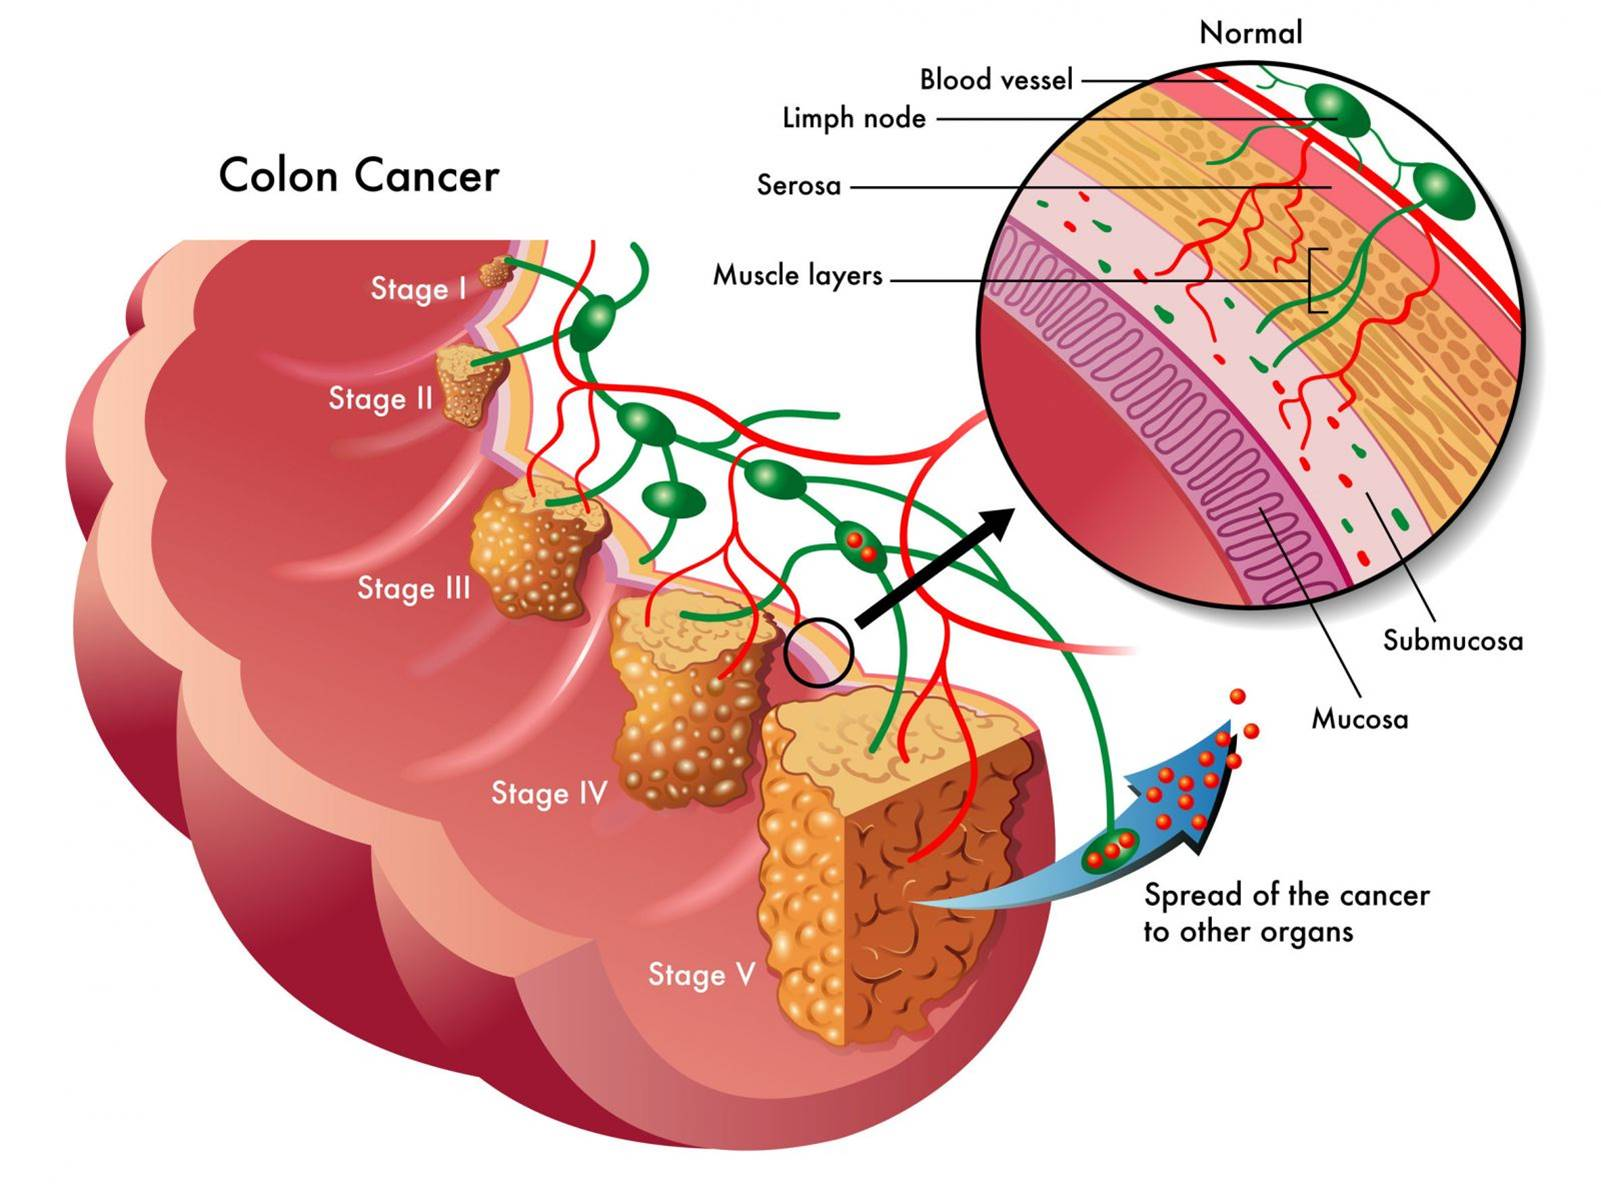 Fat in feces points to early presence of colorectal cancer